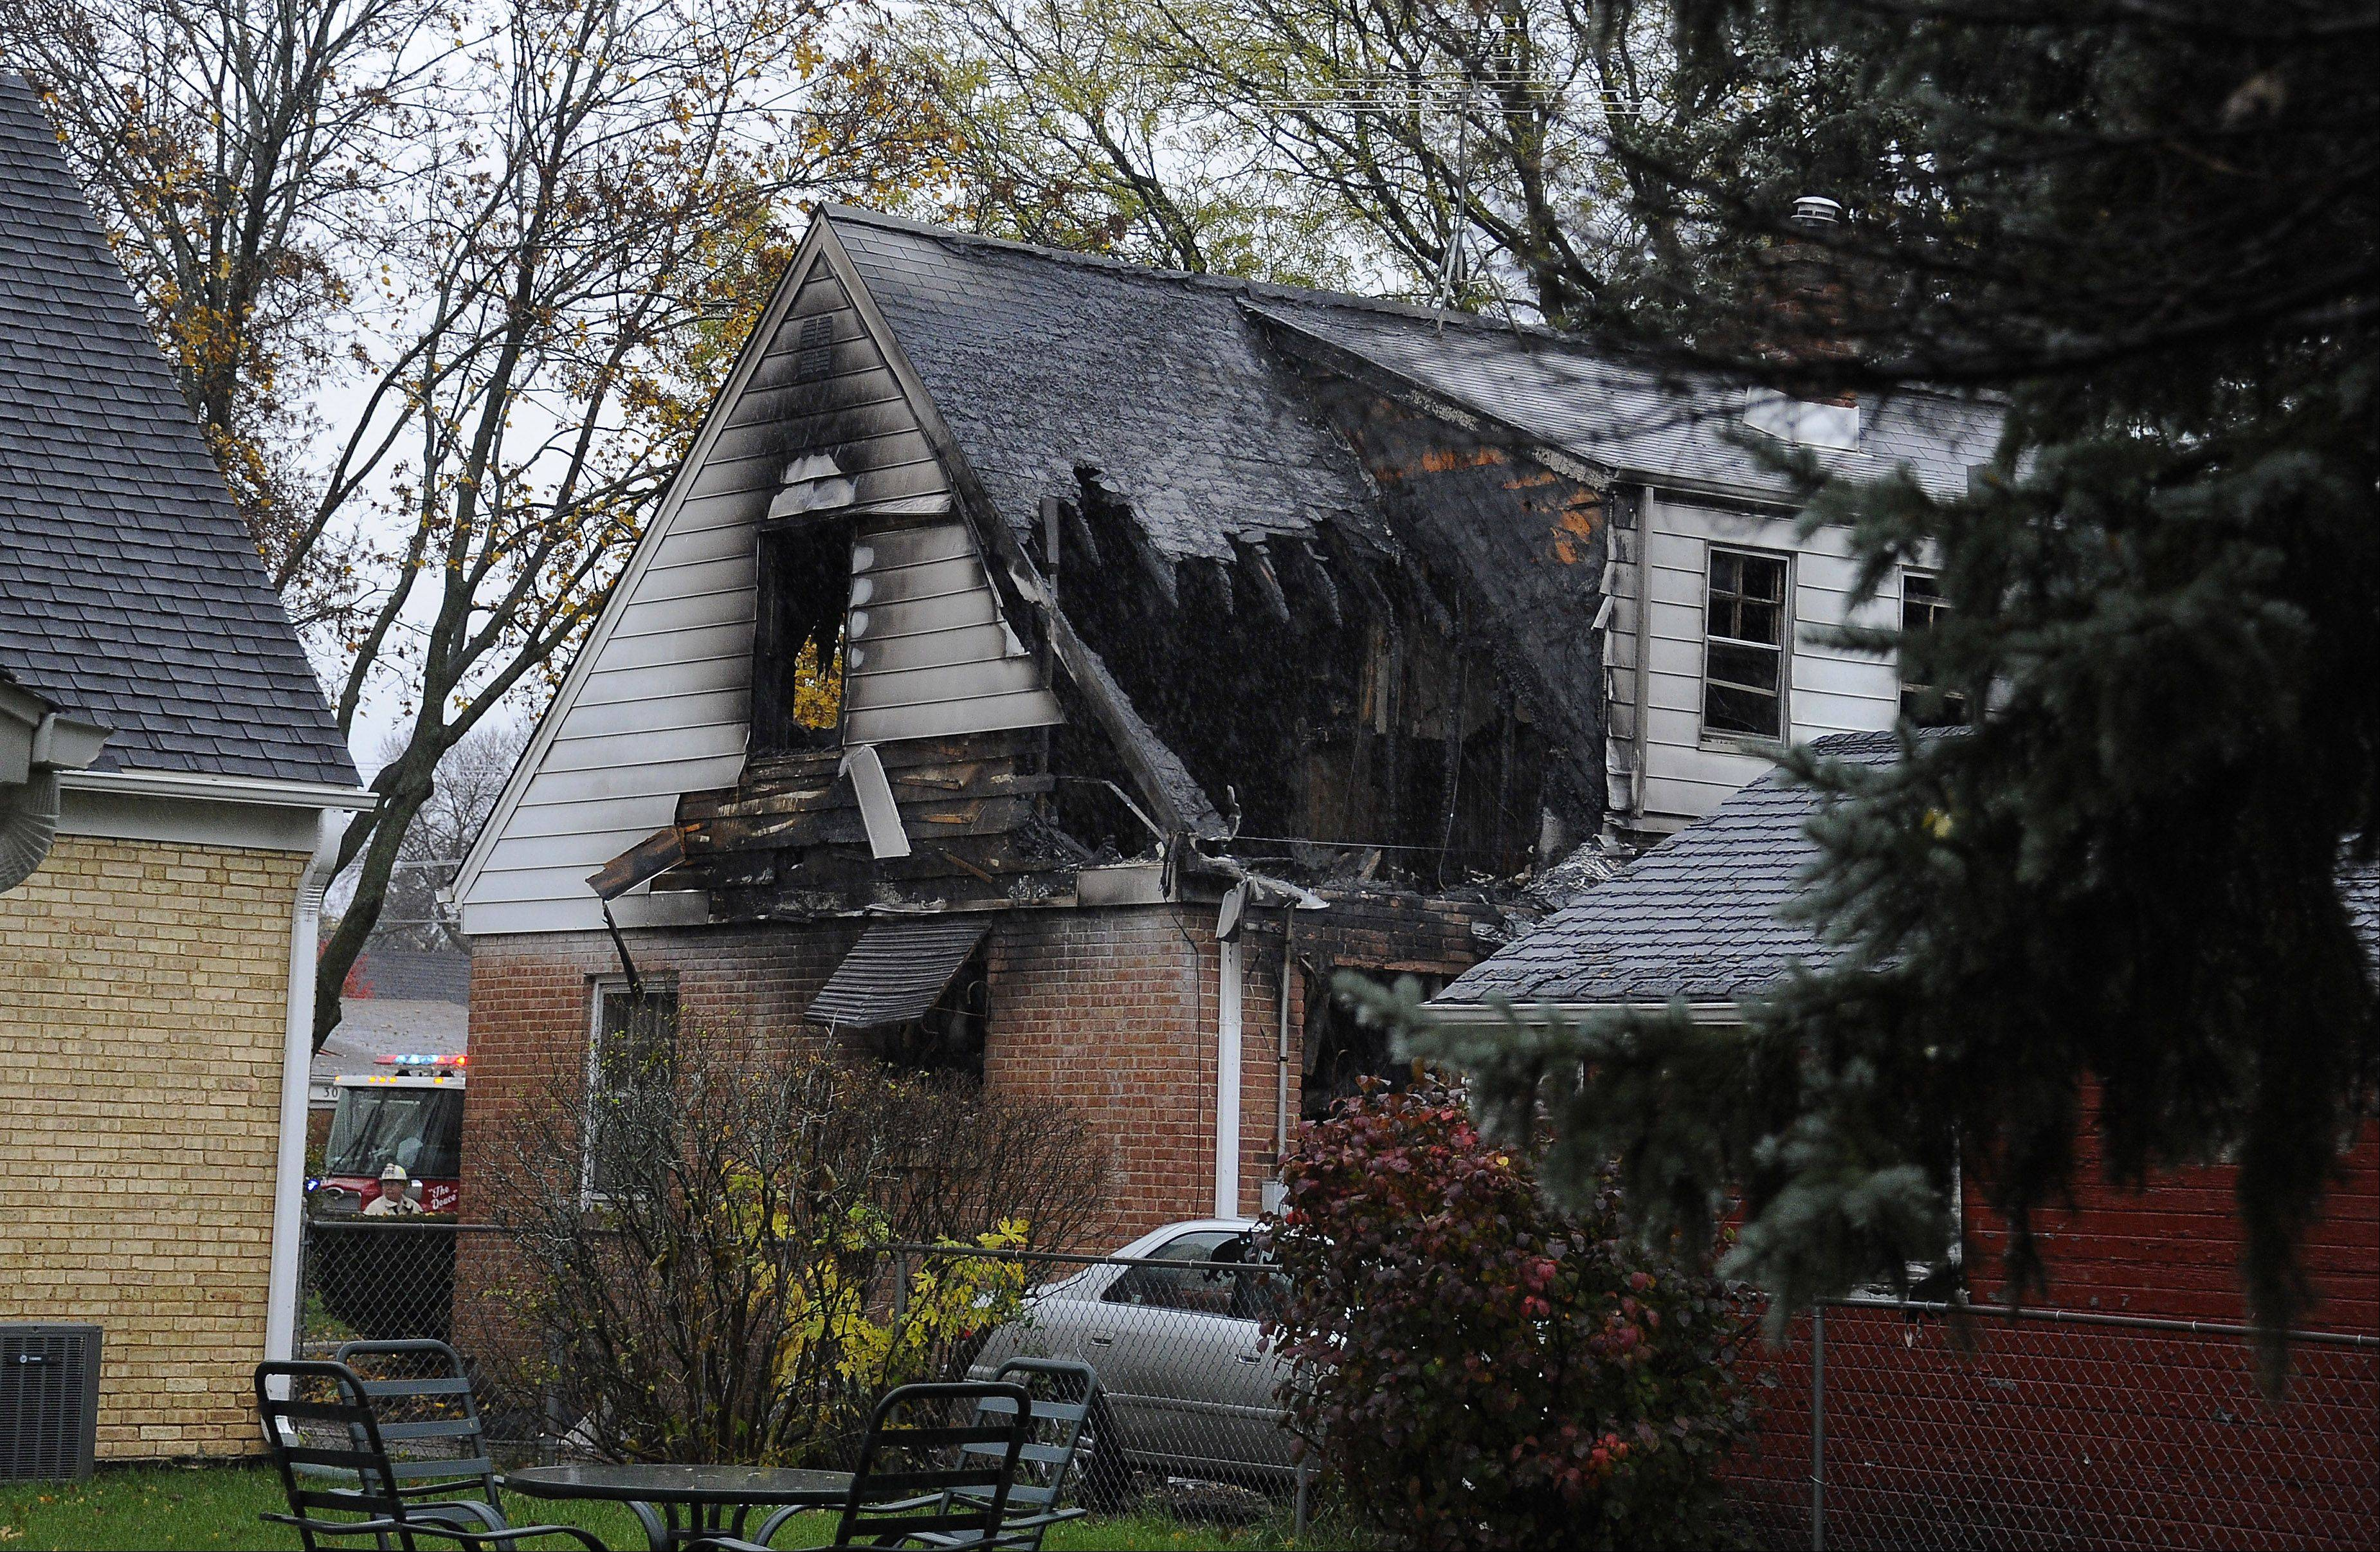 Arlington Heights fire officials think the fire started in a back bedroom area.